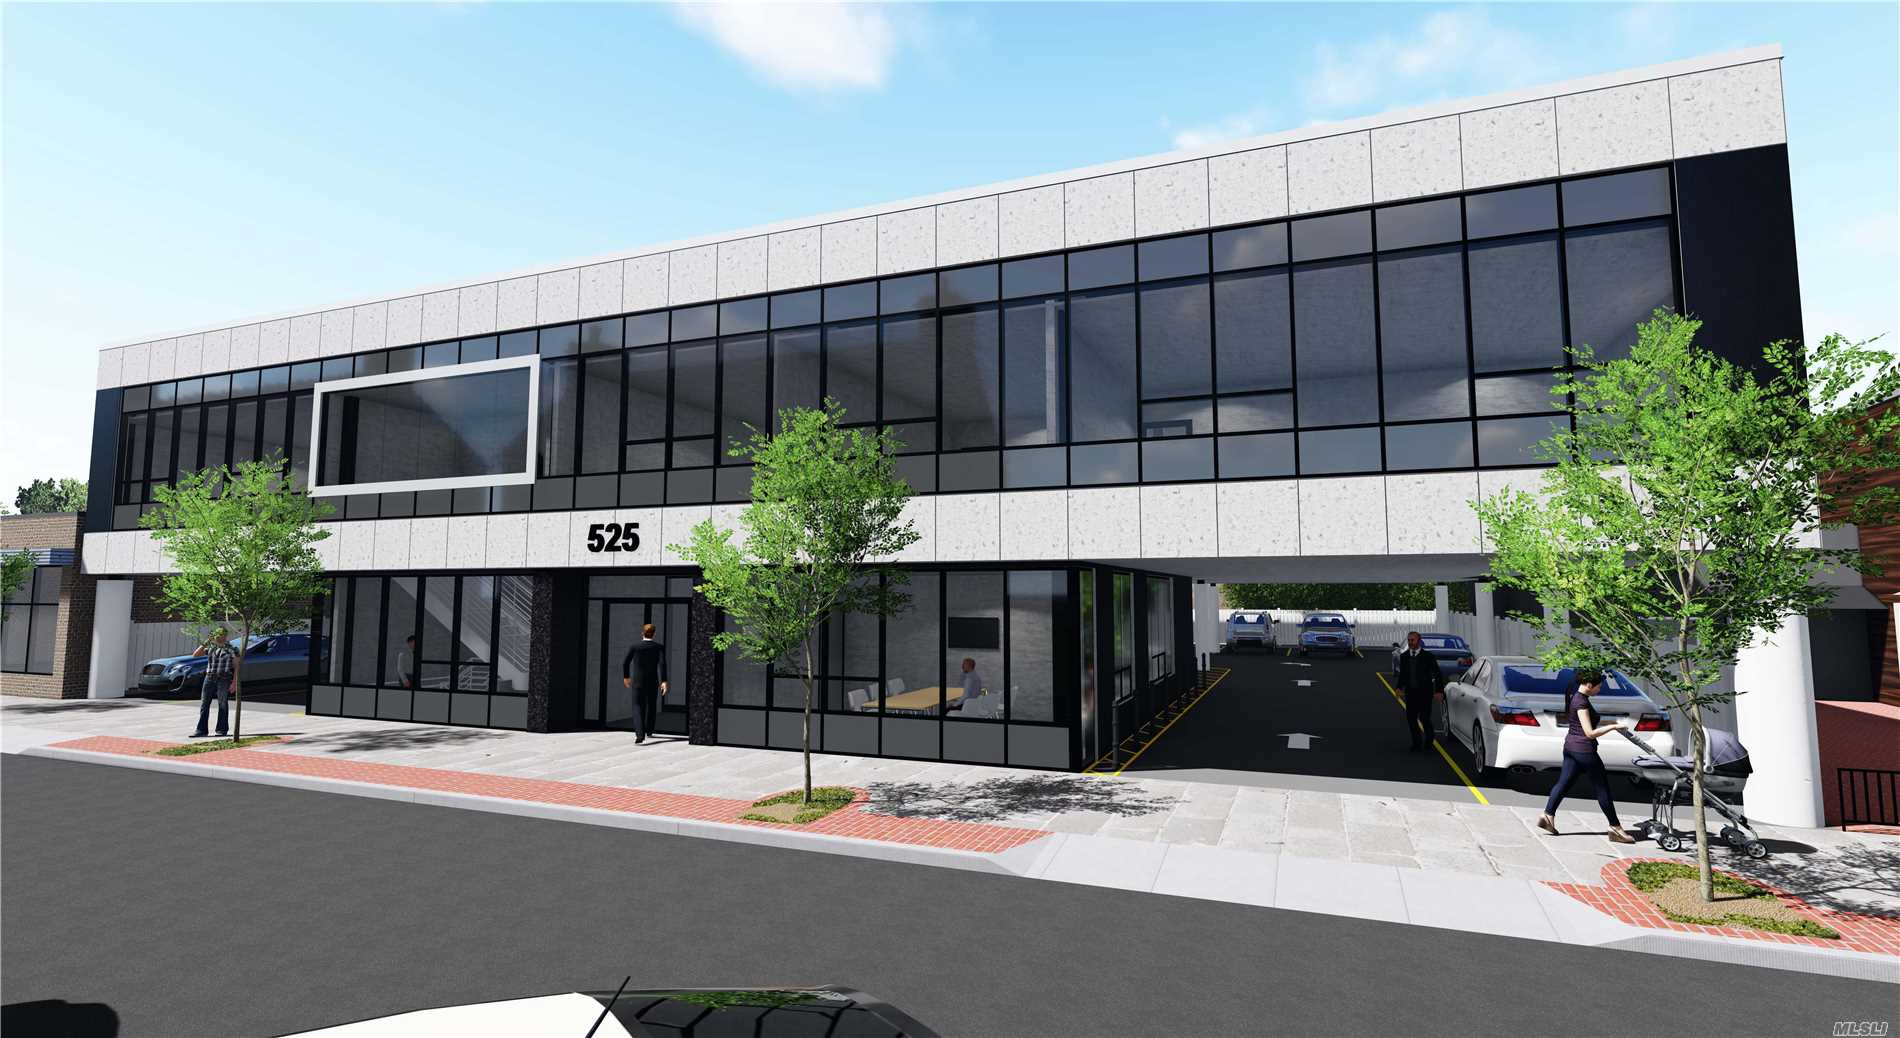 Exclusive New Construction! Brand New Office Space In The Heart Of Cedarhurst With Parking Included! Single Offices And 3 Or 4 Room Suites With All Amenities And Utilities Included. Rental Prices Begin At $1, 475 And Up. Occupancy May 2019